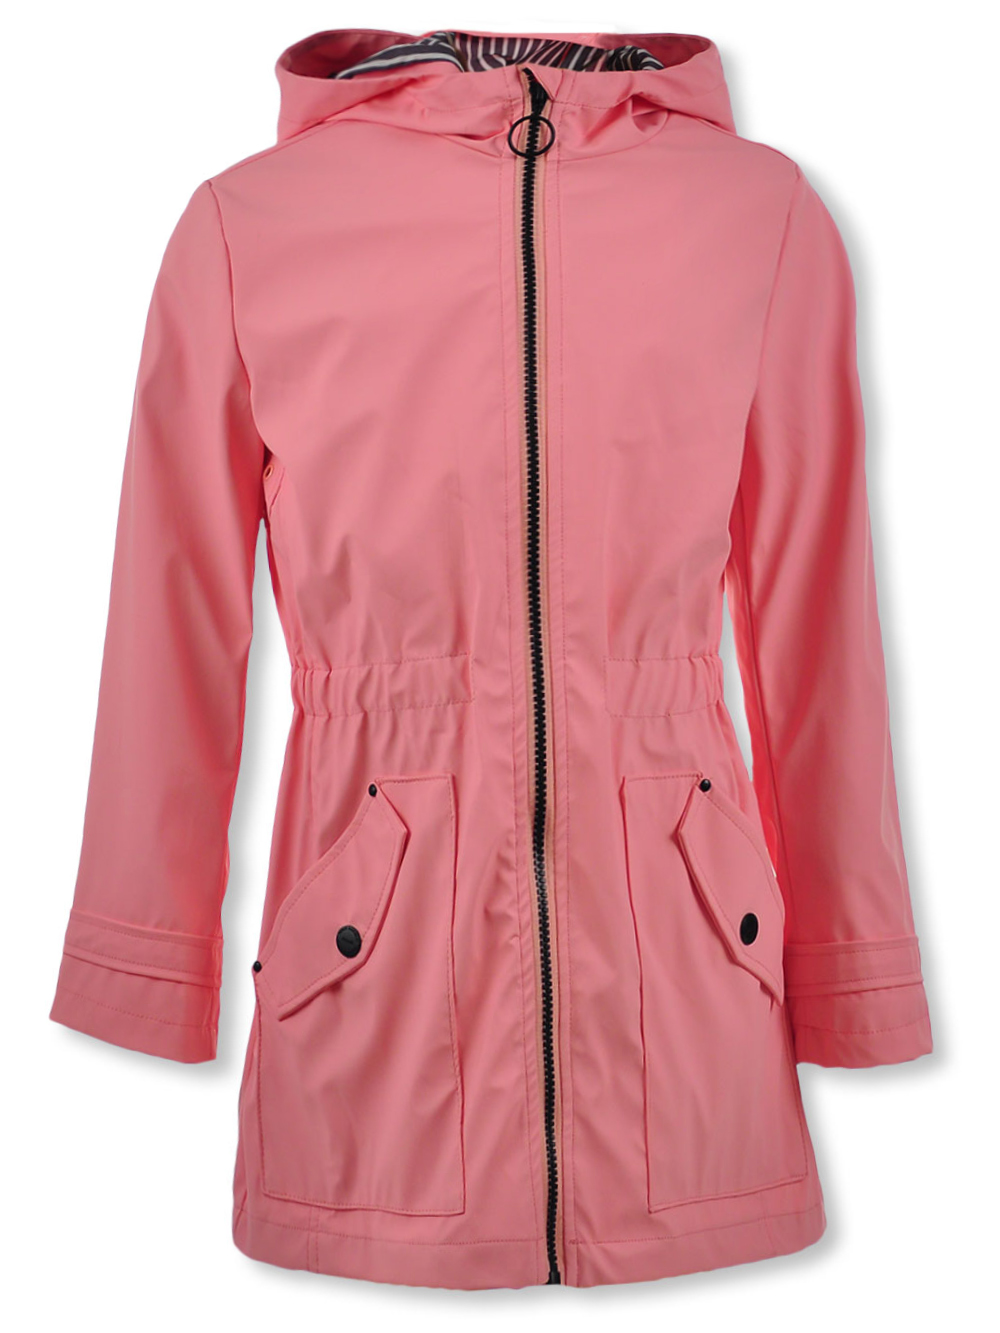 Girls Light Pink Light Jackets